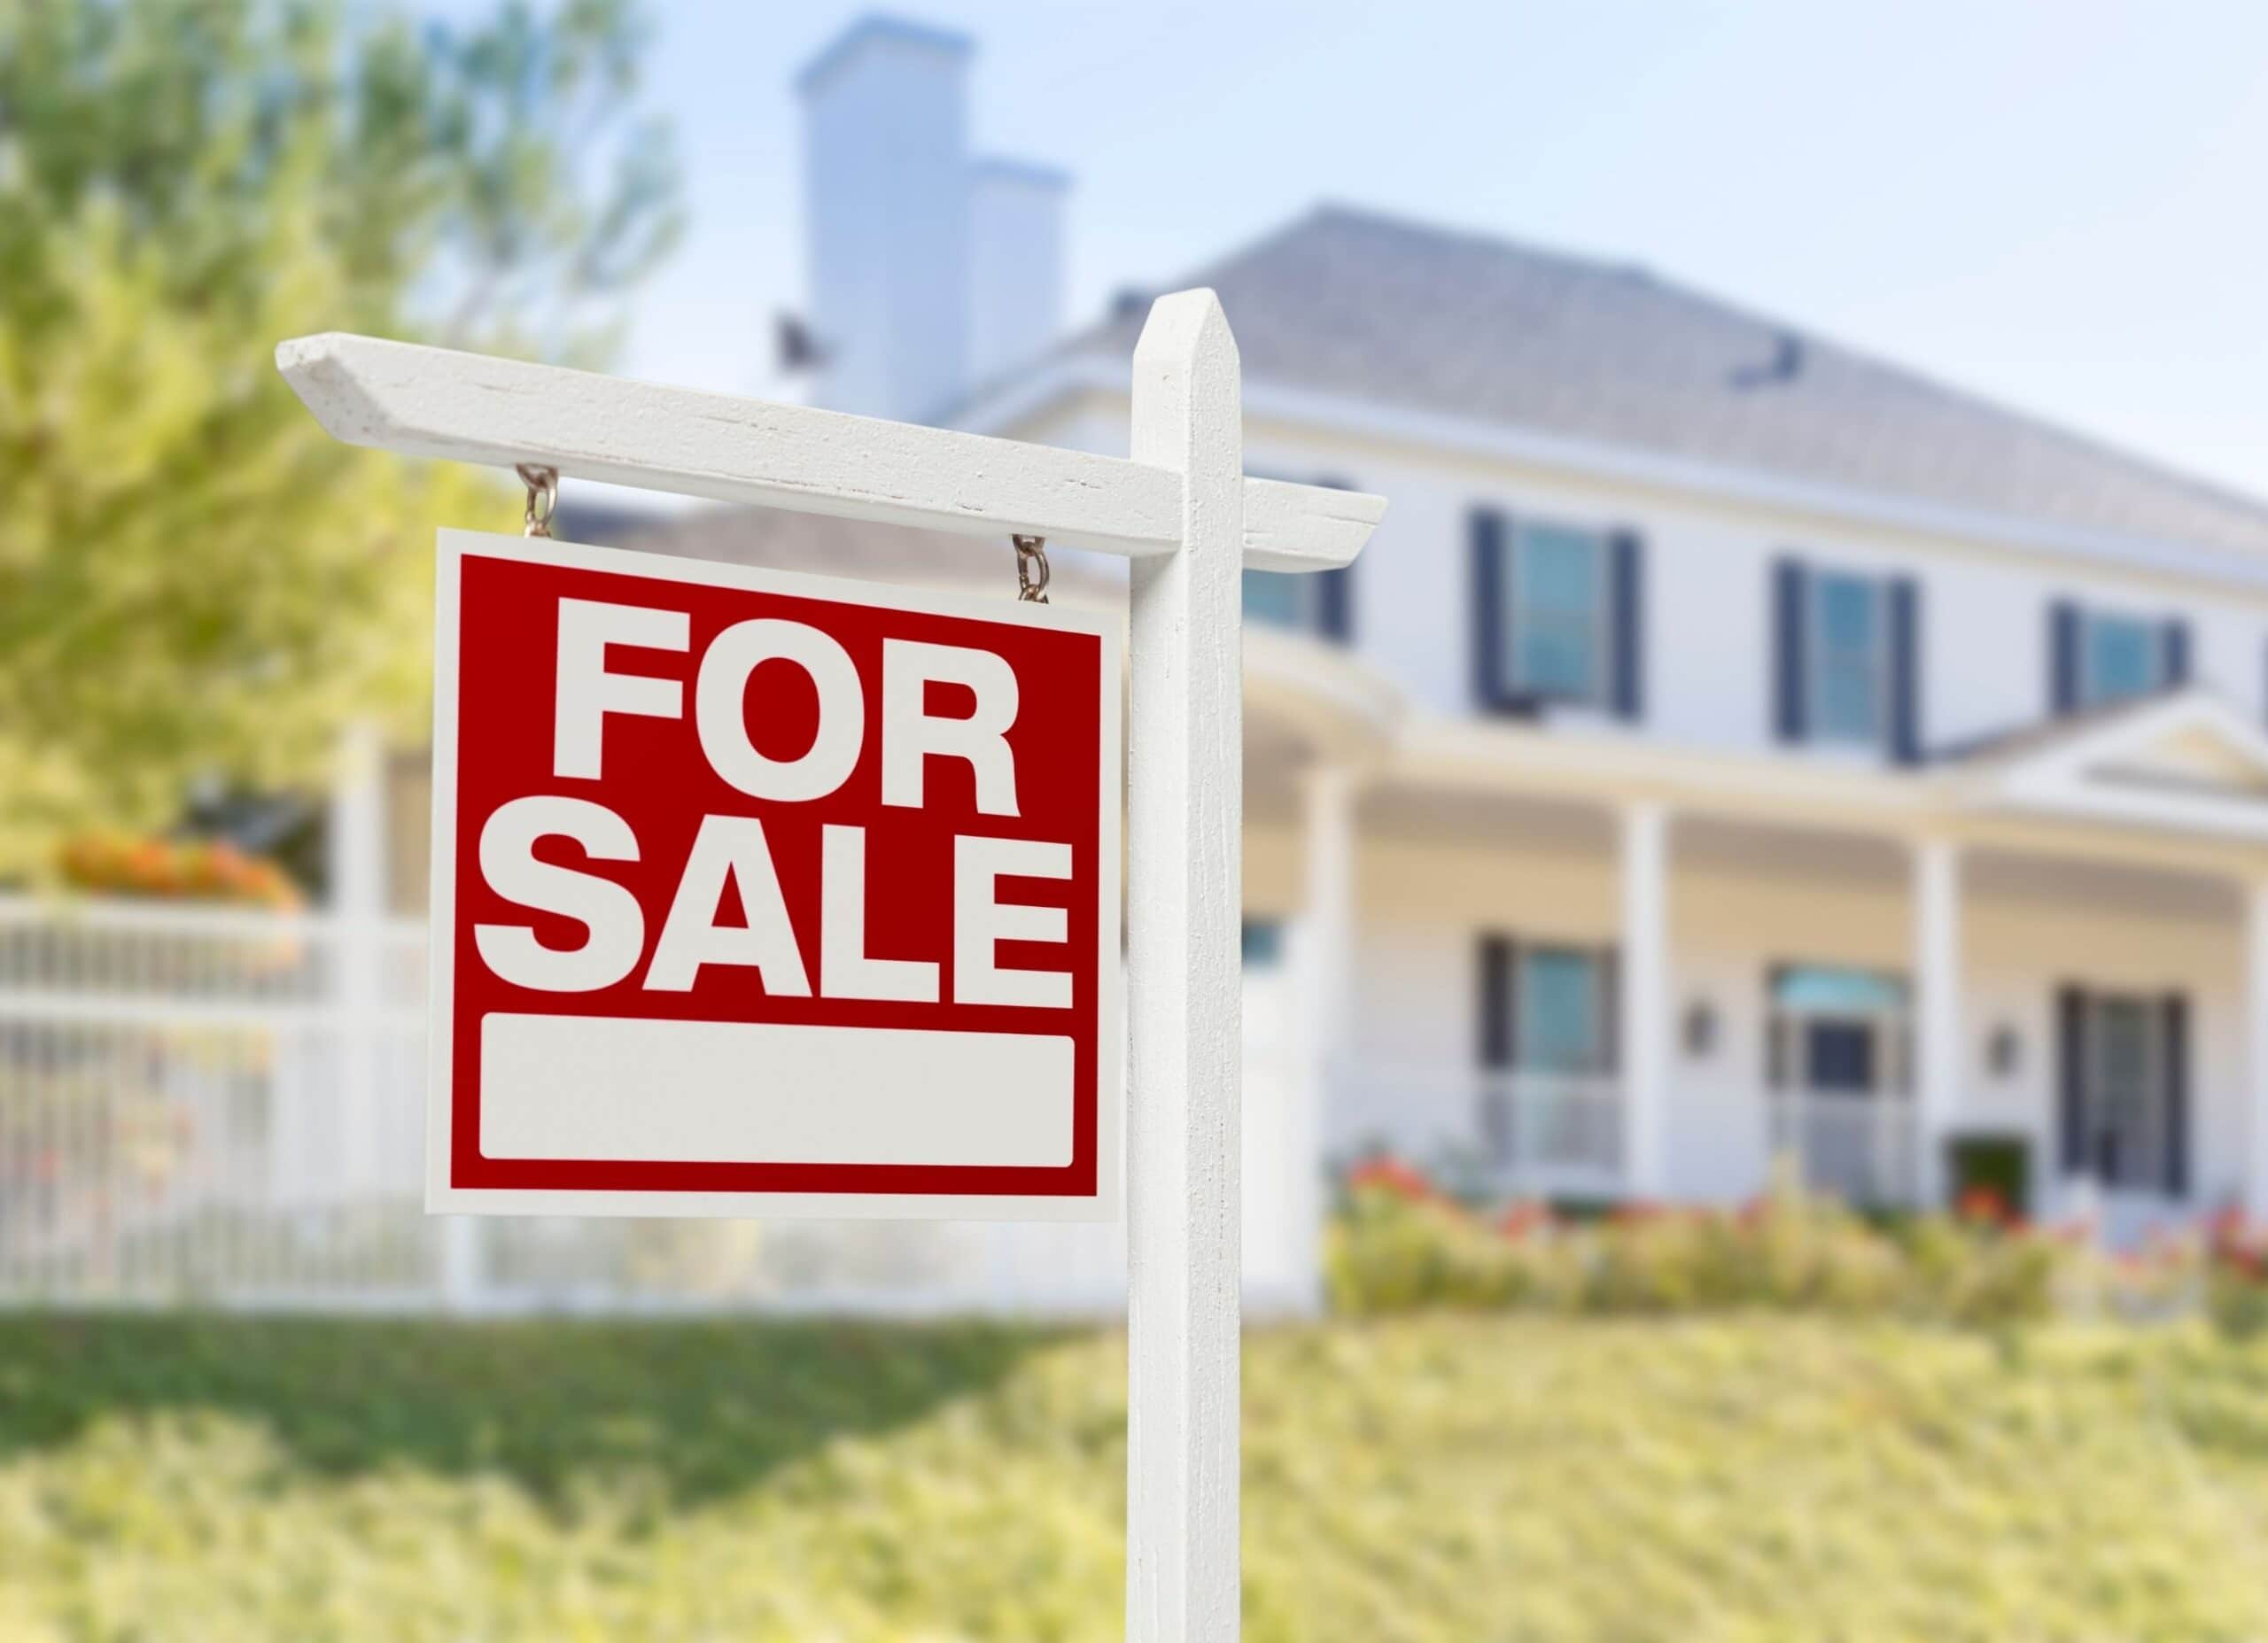 Things I wish I'd known before getting a mortgage